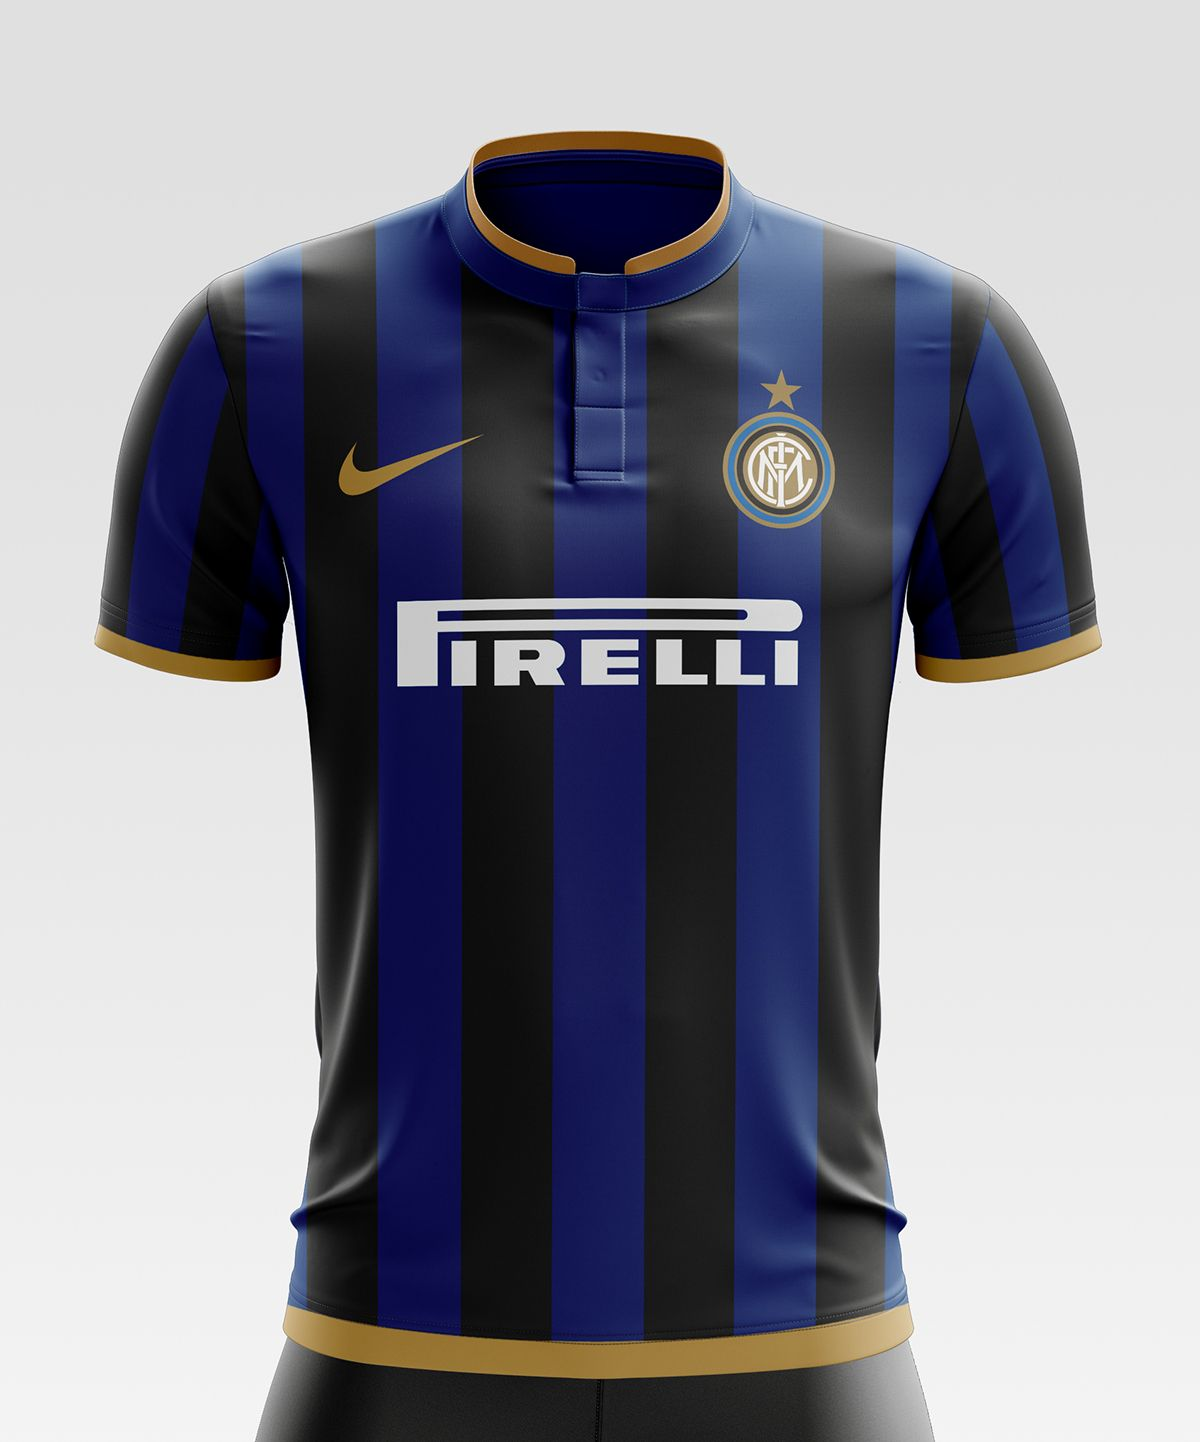 c6b76a48ee3 Inter Milan Football Kit 17 18. on Behance